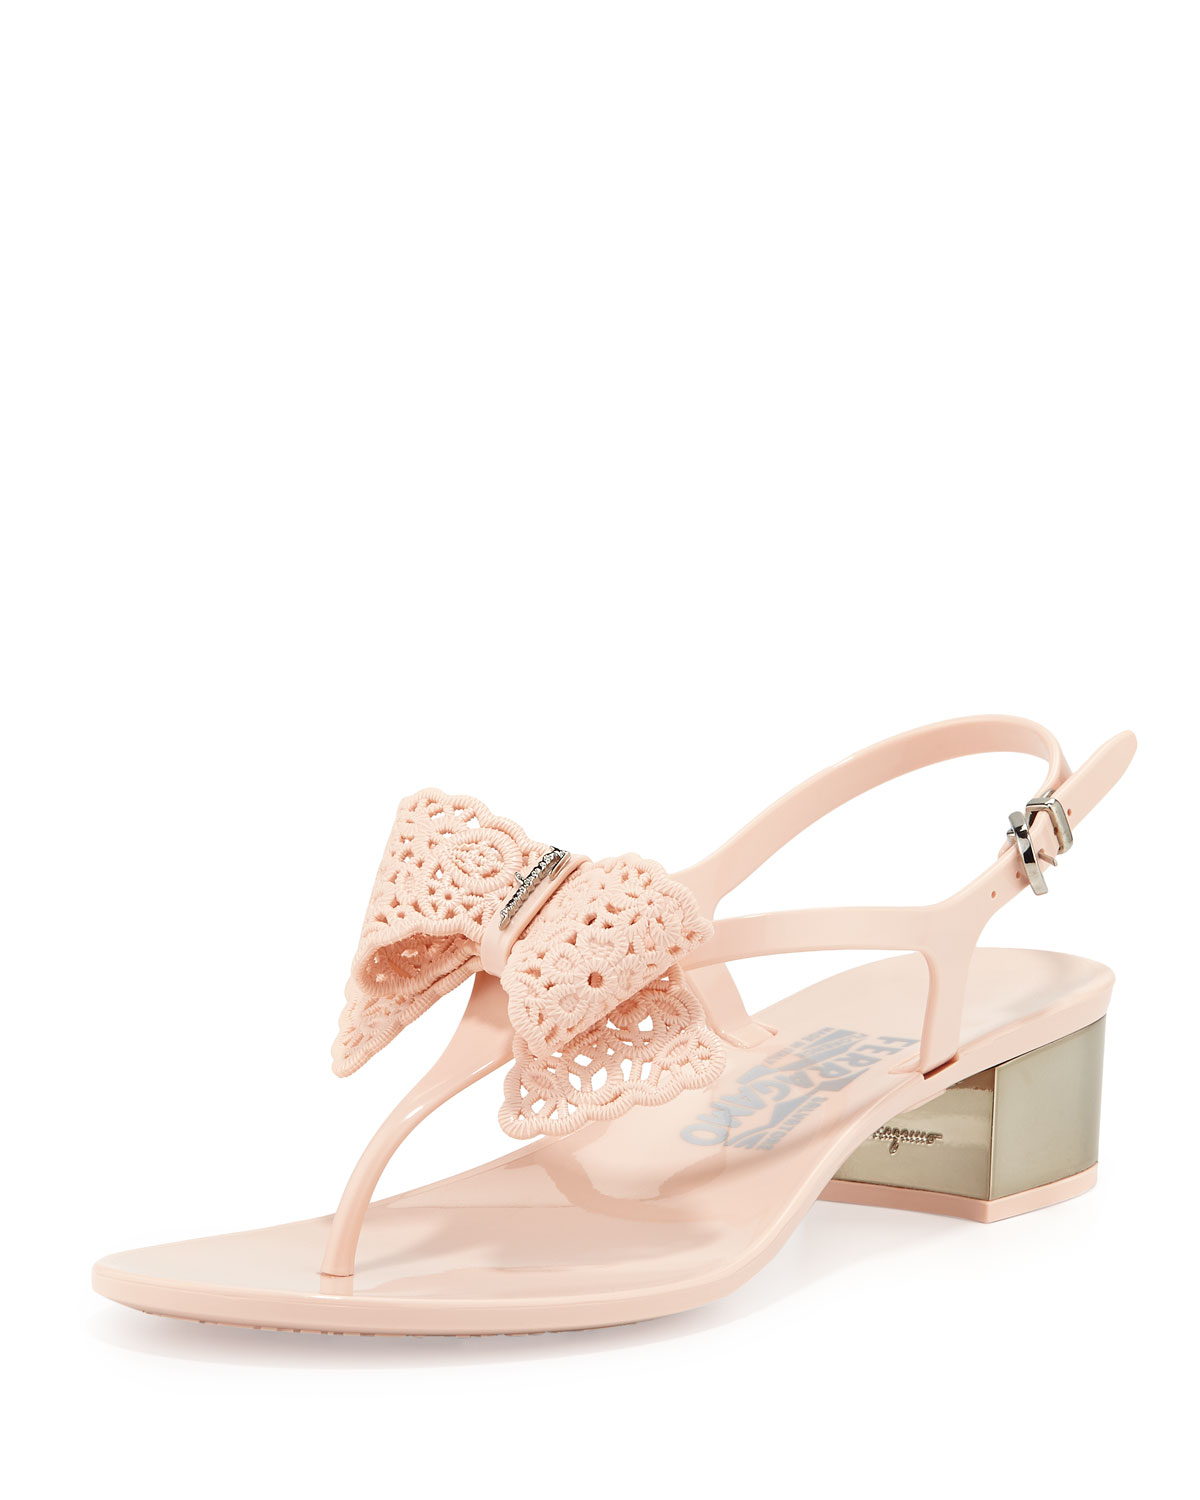 d7fb1fa02434 Salvatore Ferragamo Perala Lace Bow Jelly Sandal on PopScreen